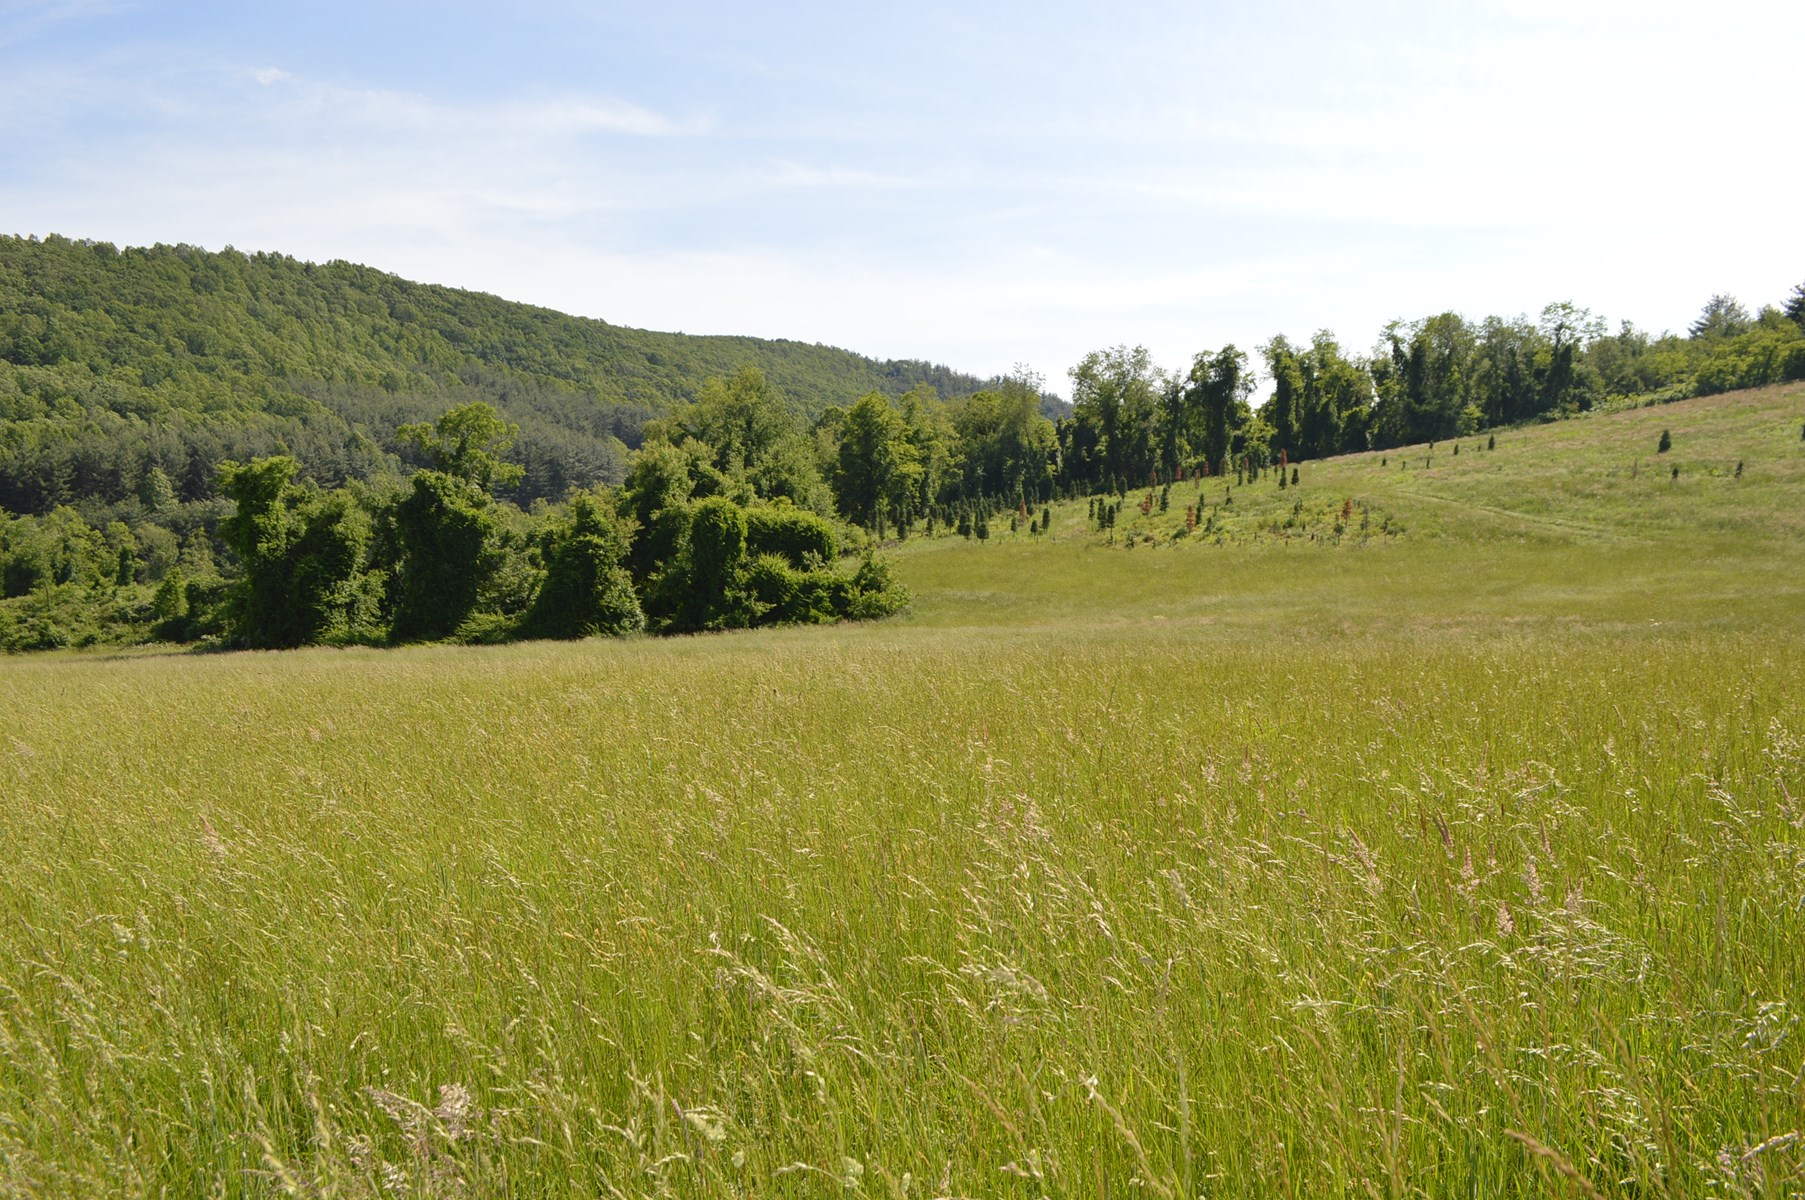 Unrestricted Land Tract for Sale in Alleghany County NC